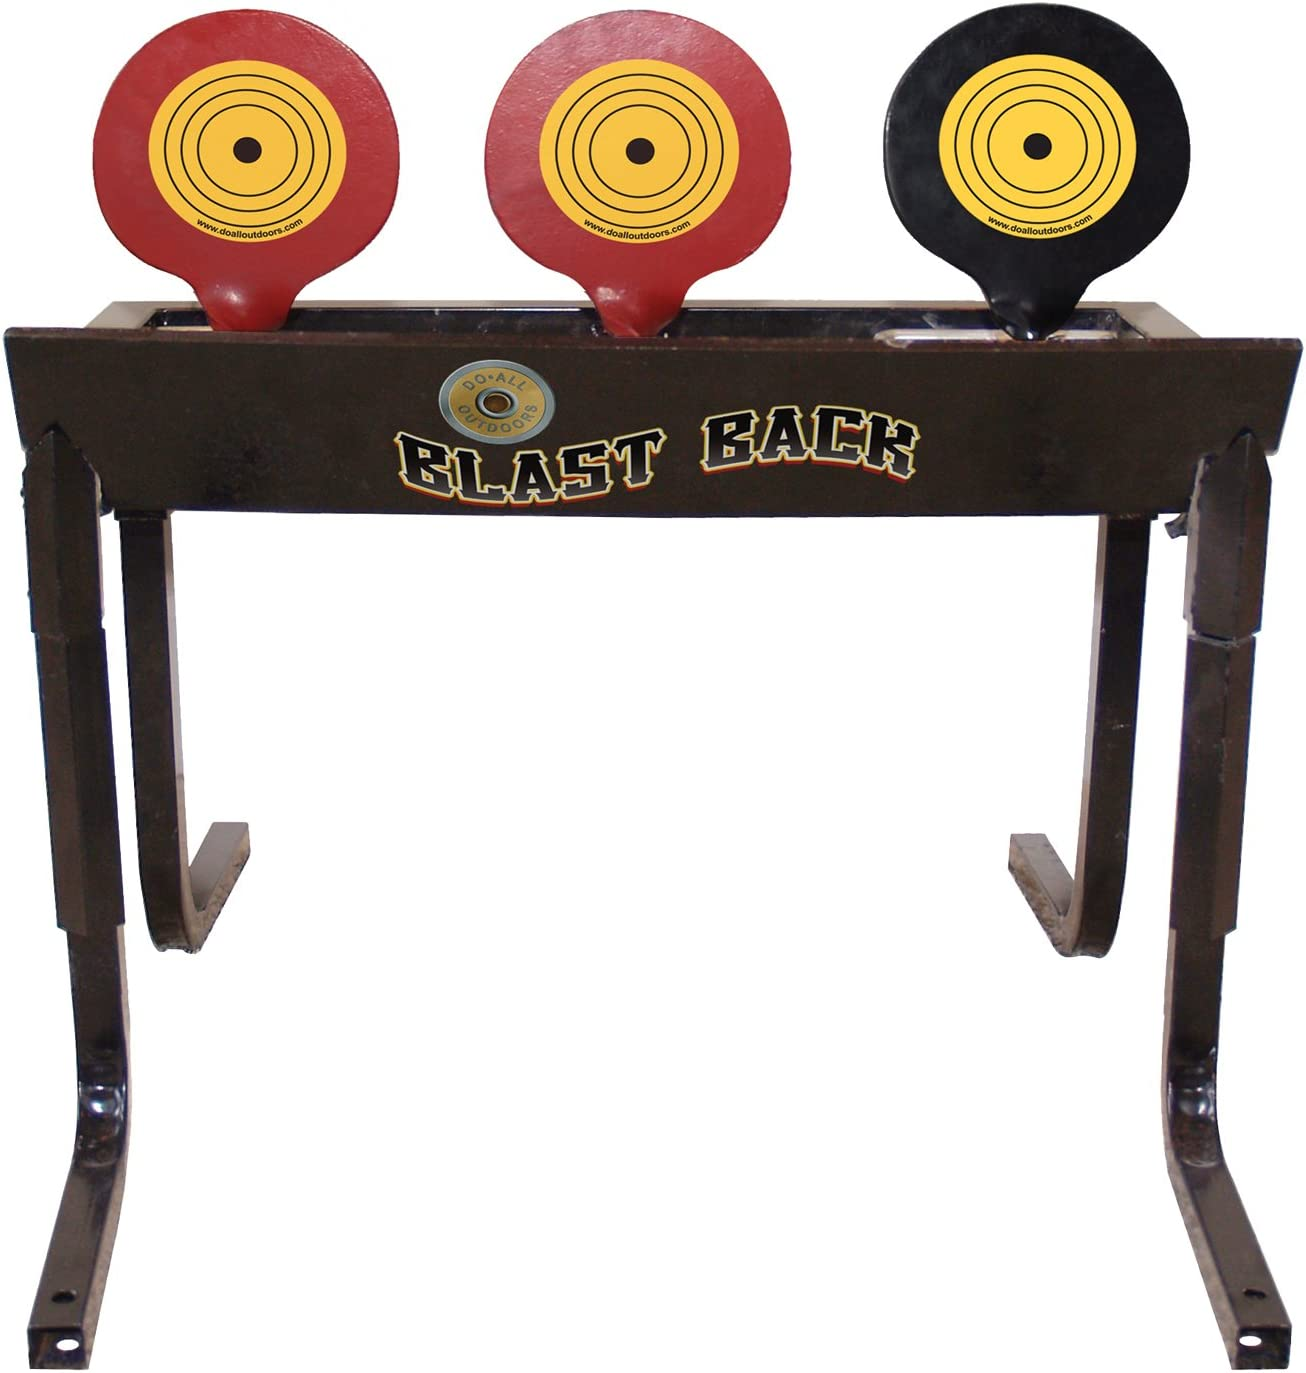 .22 POP UP TARGET METAL TARGET Lots of fun AUTO RESETS AFTER HIT